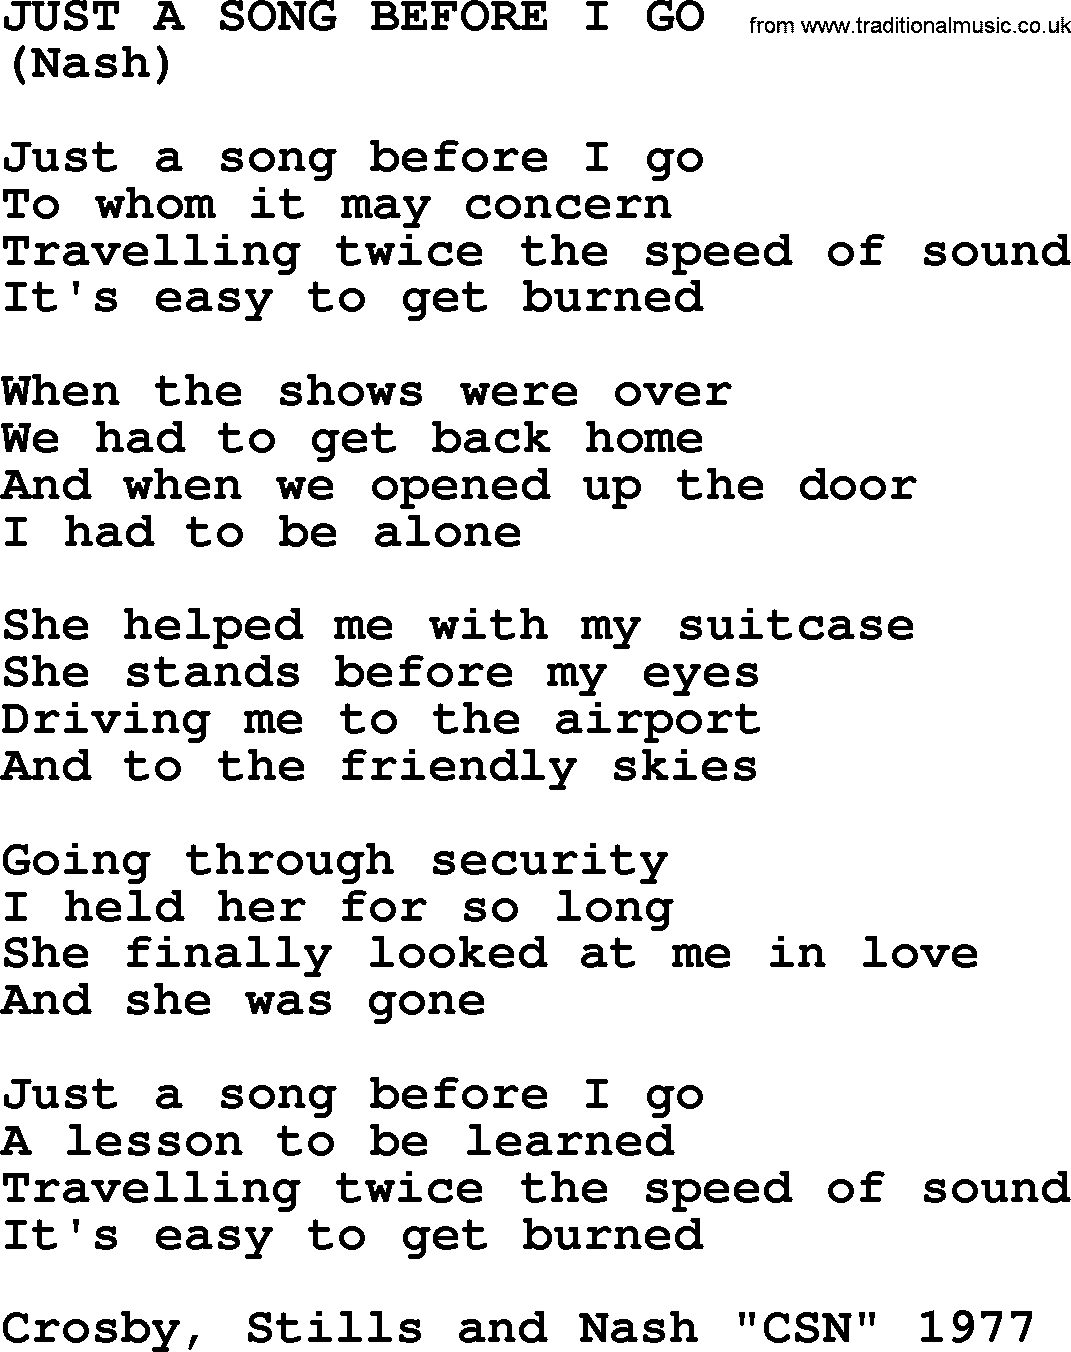 Just A Song Before I Go, by The Byrds   lyrics with pdf